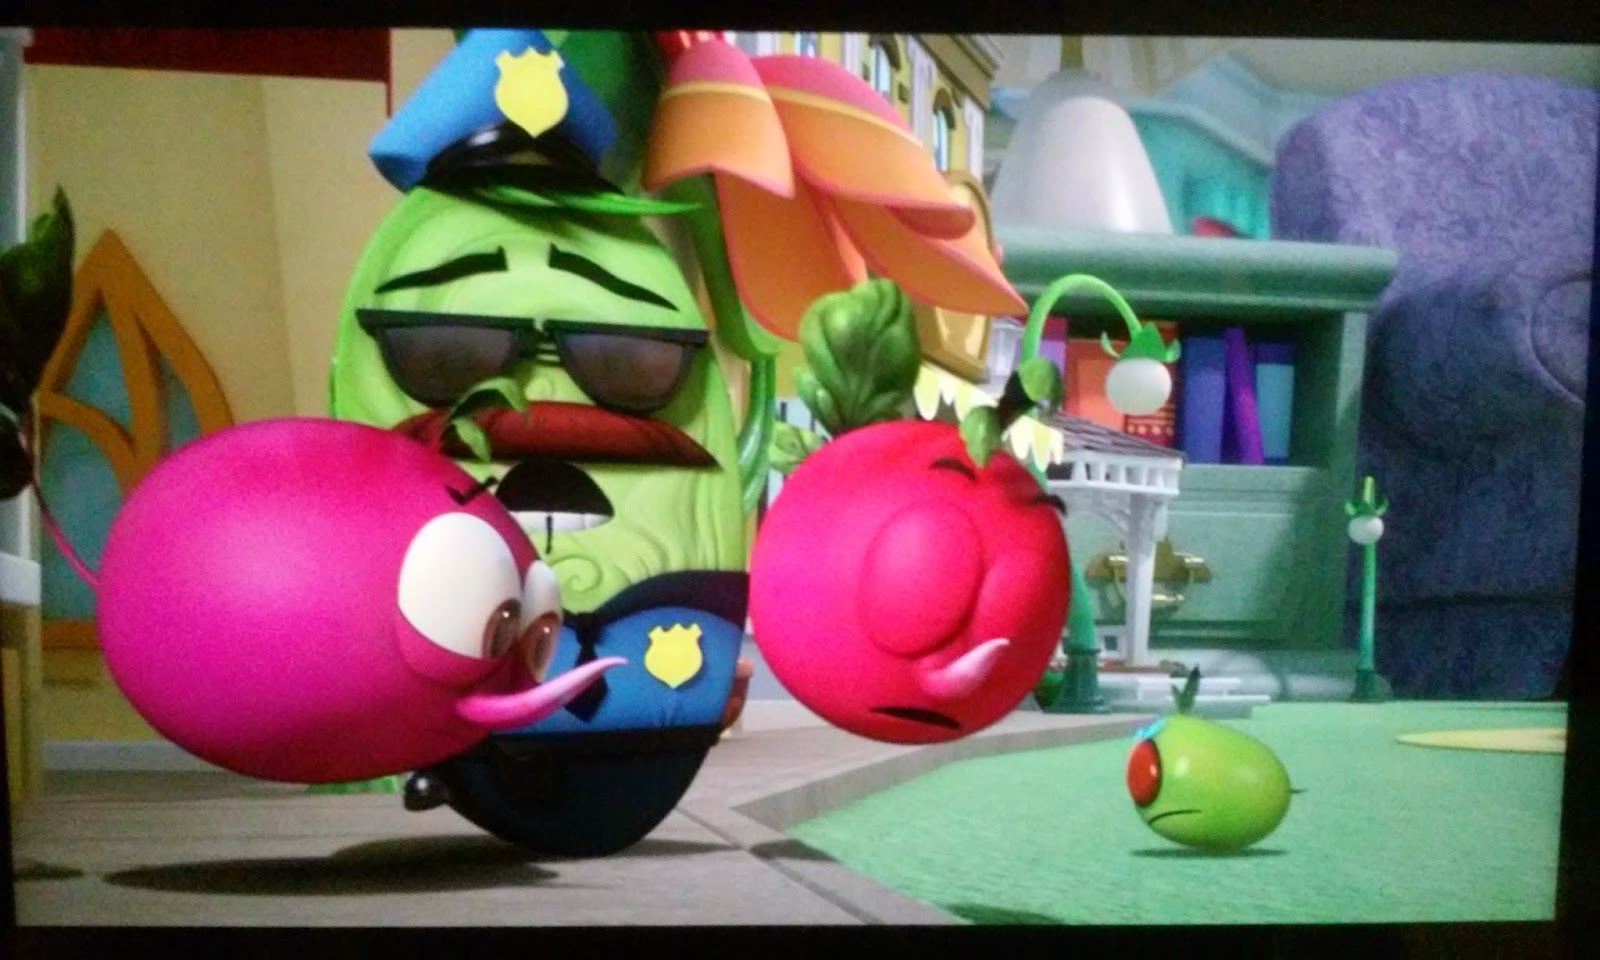 veggie tales remote control car with Veggietales In House Season 1 Ep 13 on Little Drummer Boy Party together with 161848180337390673 as well Veggietales In House Season 1 Ep 13 in addition Veggietales In House Season 1 Ep 13 moreover 365769 Best Female Business News Presenter.